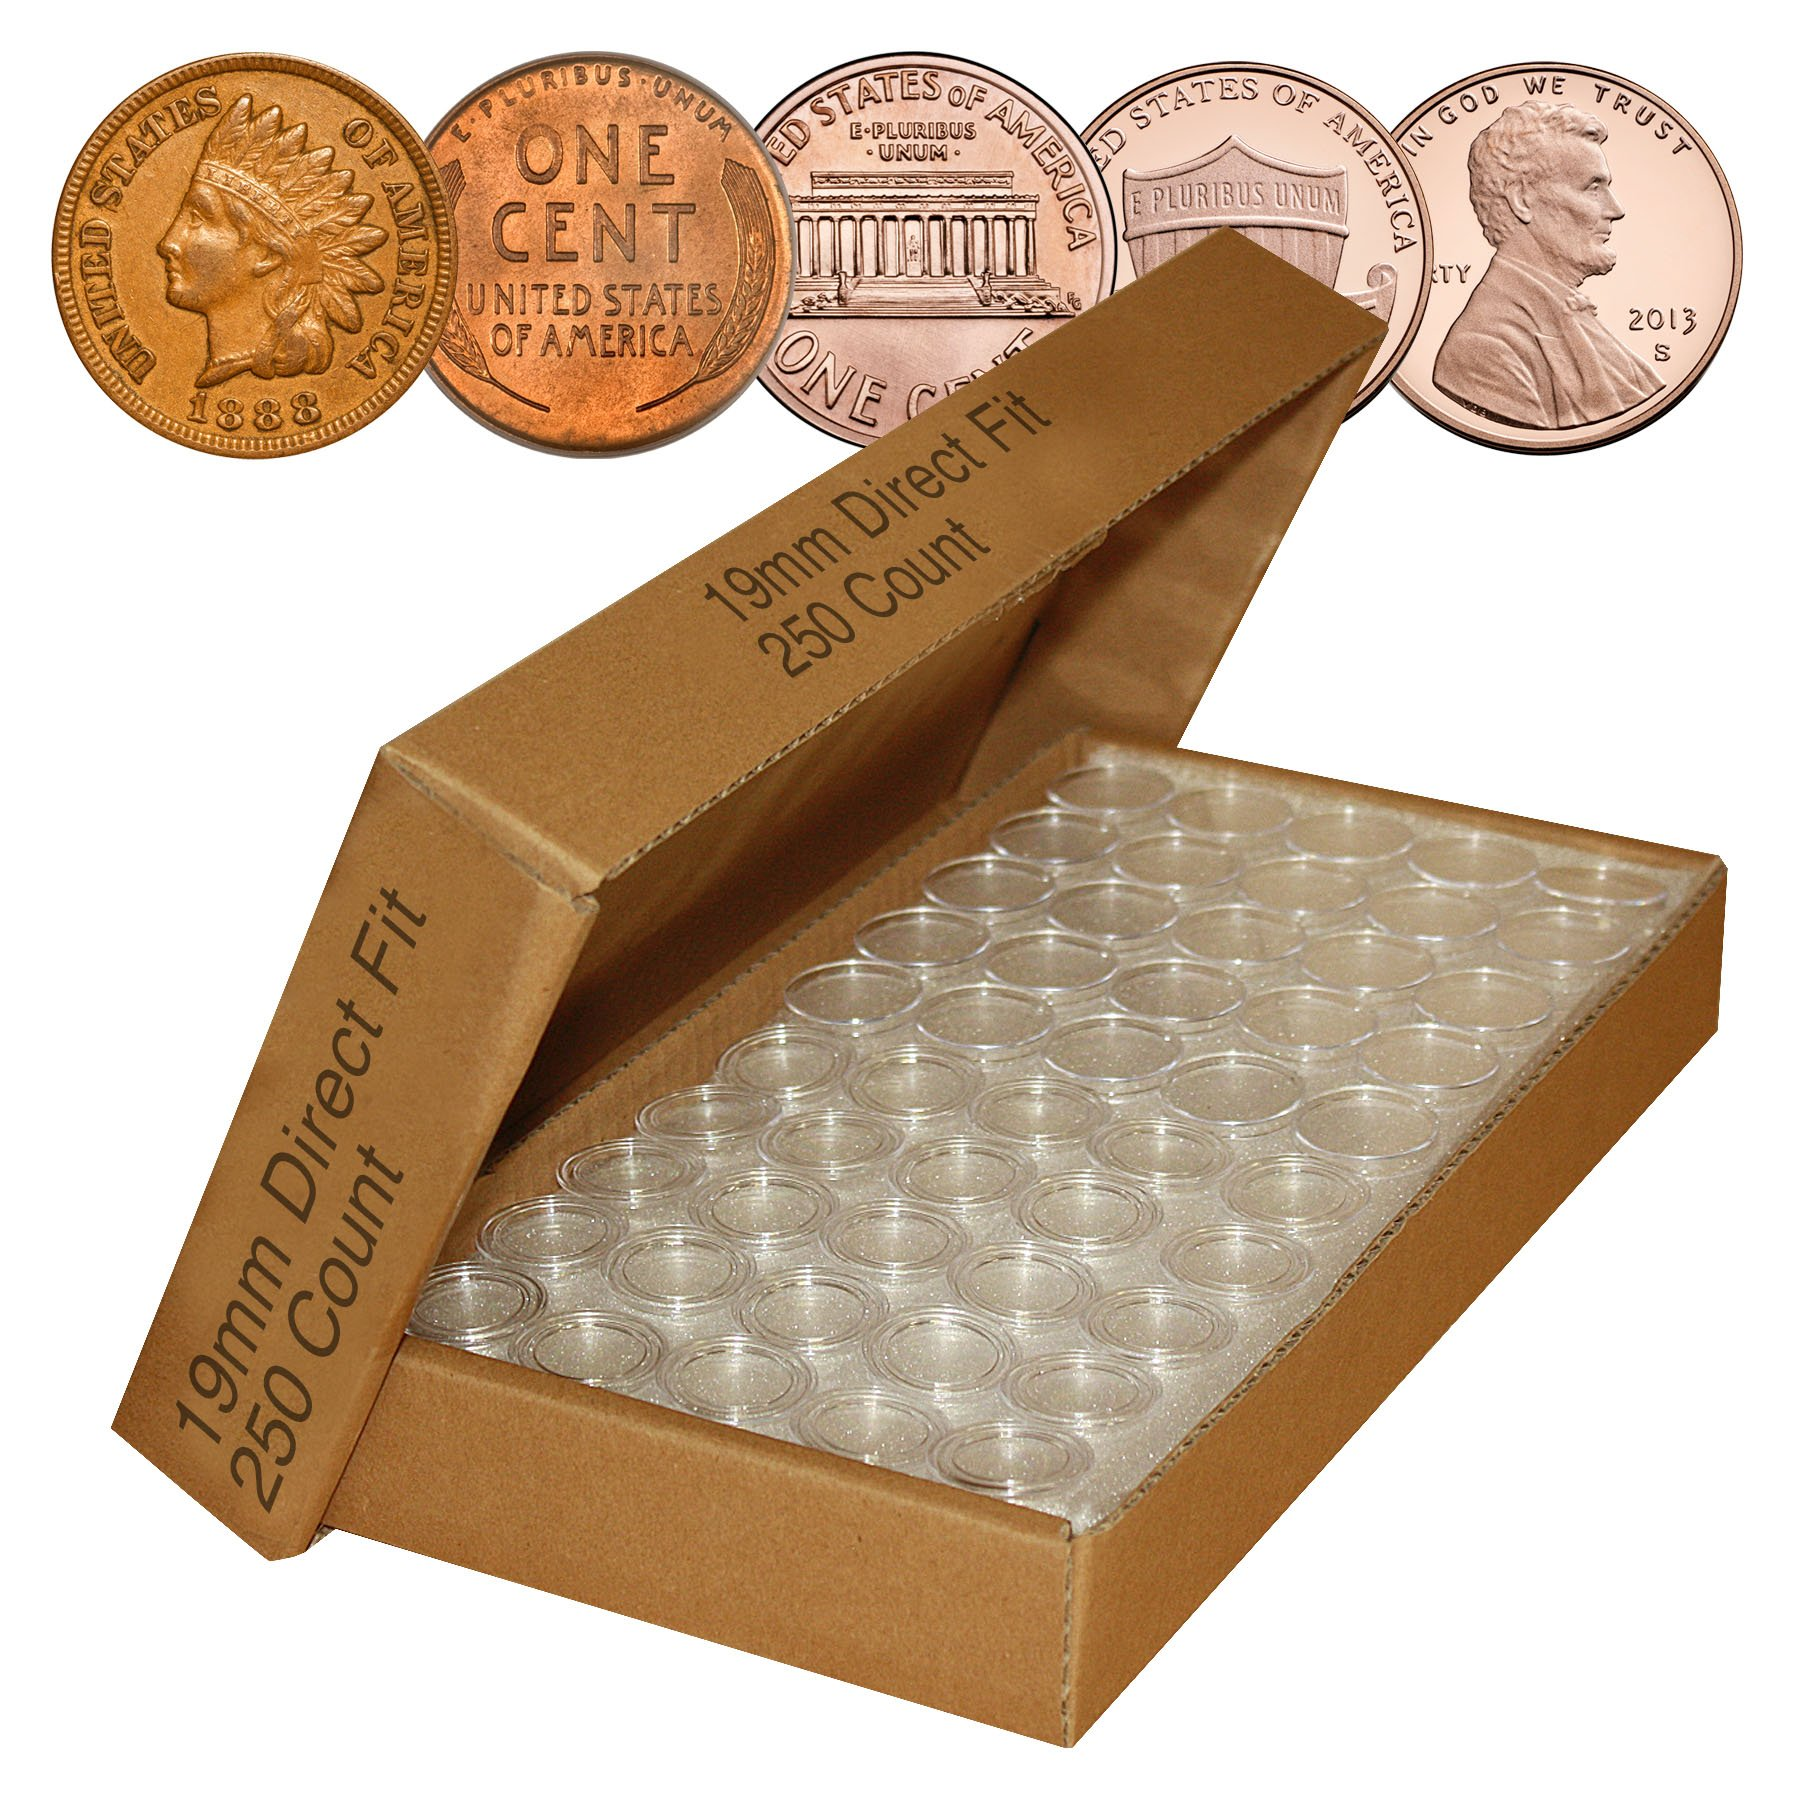 PENNY Direct-Fit Airtight 19mm Coin Capsule Holders For PENNIES (QTY: 250)